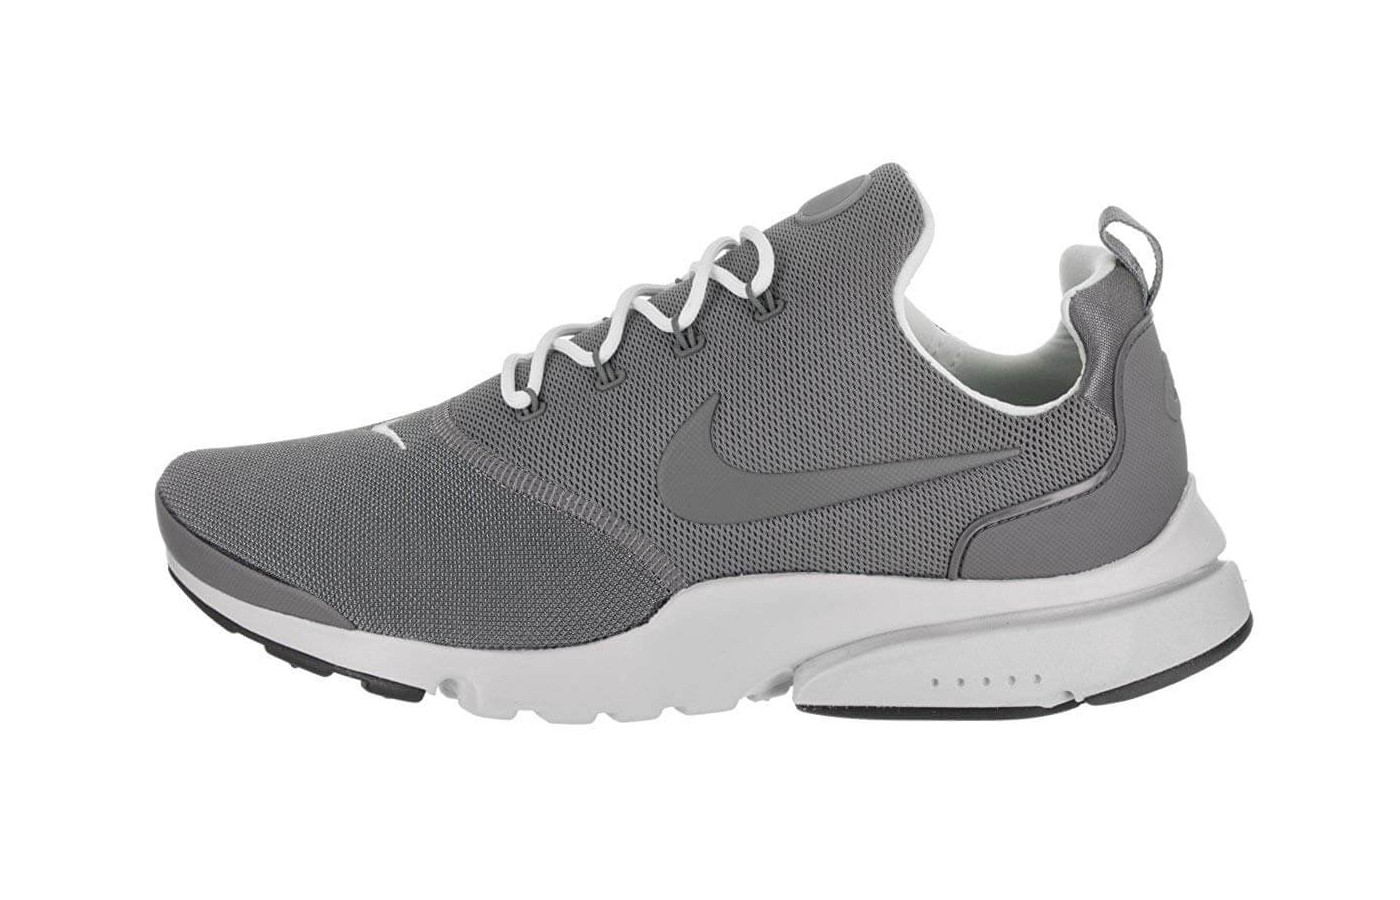 The Air Presto Fly is known for its breathable wear